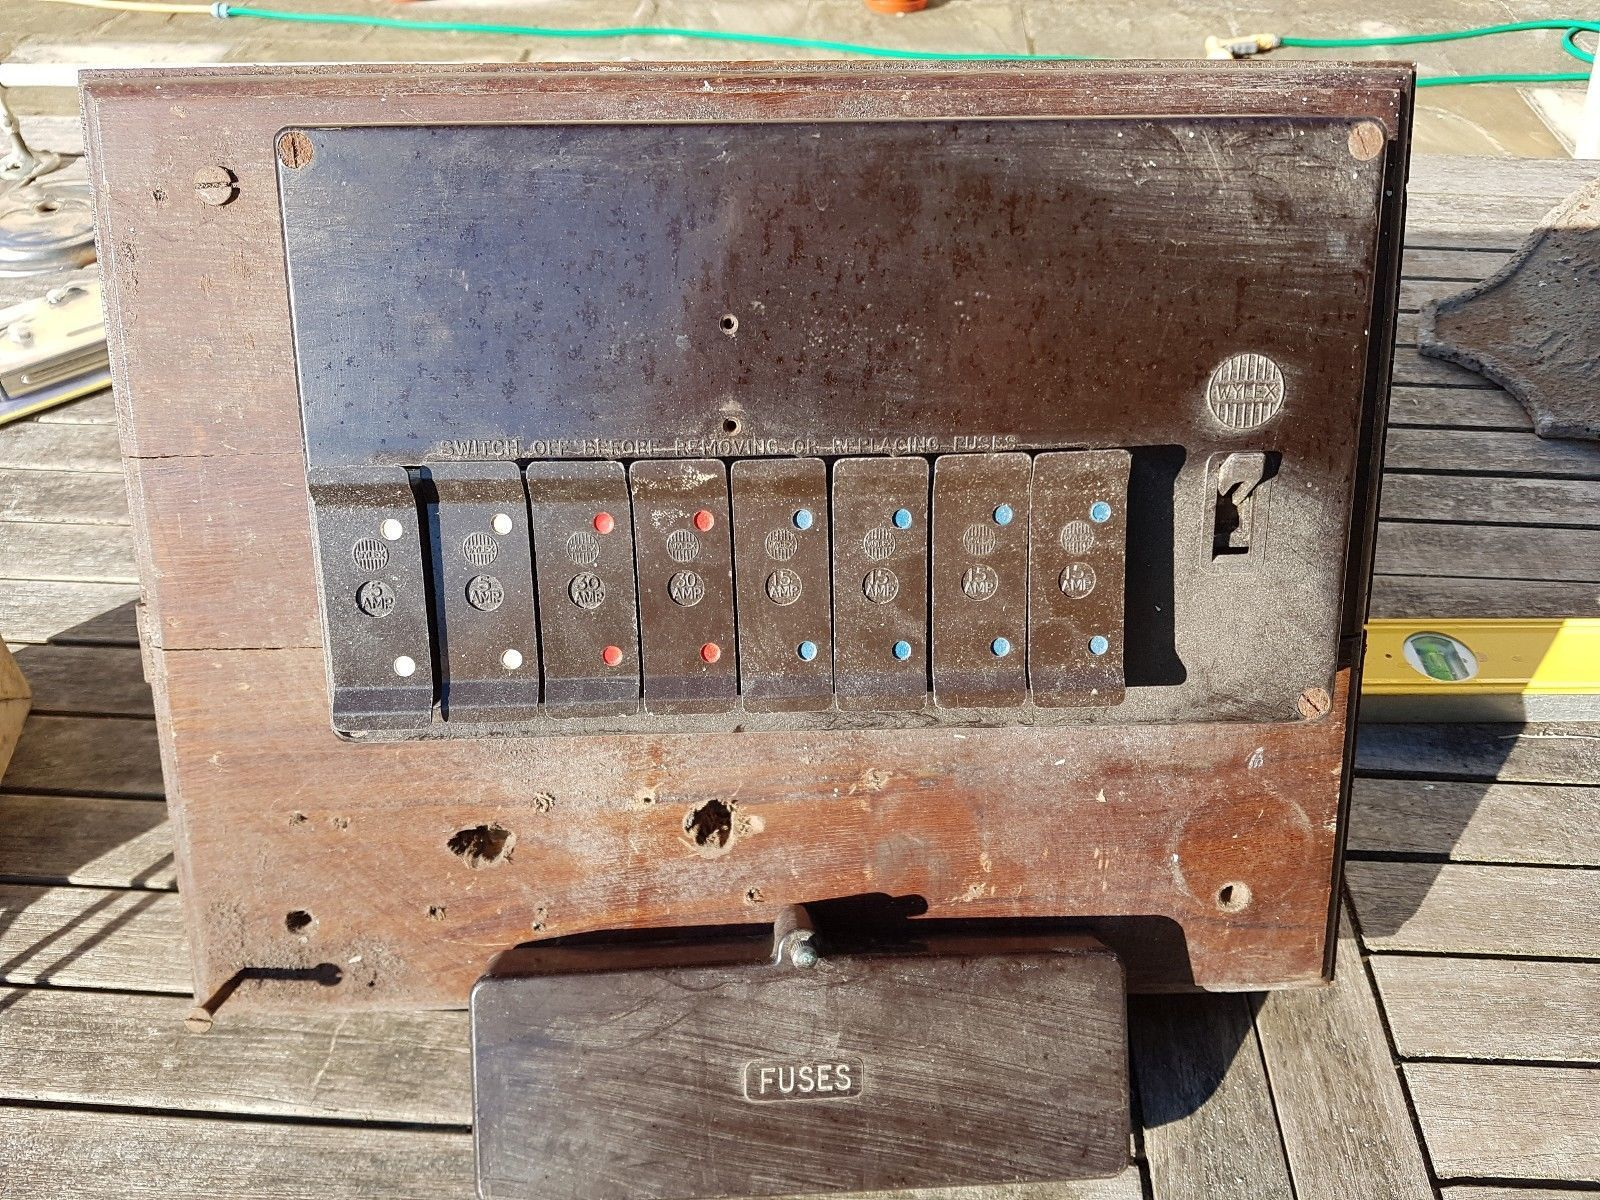 Wylex Bakelite fuse box + old fuse box with ceramic breakers + bakelite  switch. | eBay | Fuse box, Bakelite, Fuses | Wylex Wooden Fuse Box |  | Pinterest